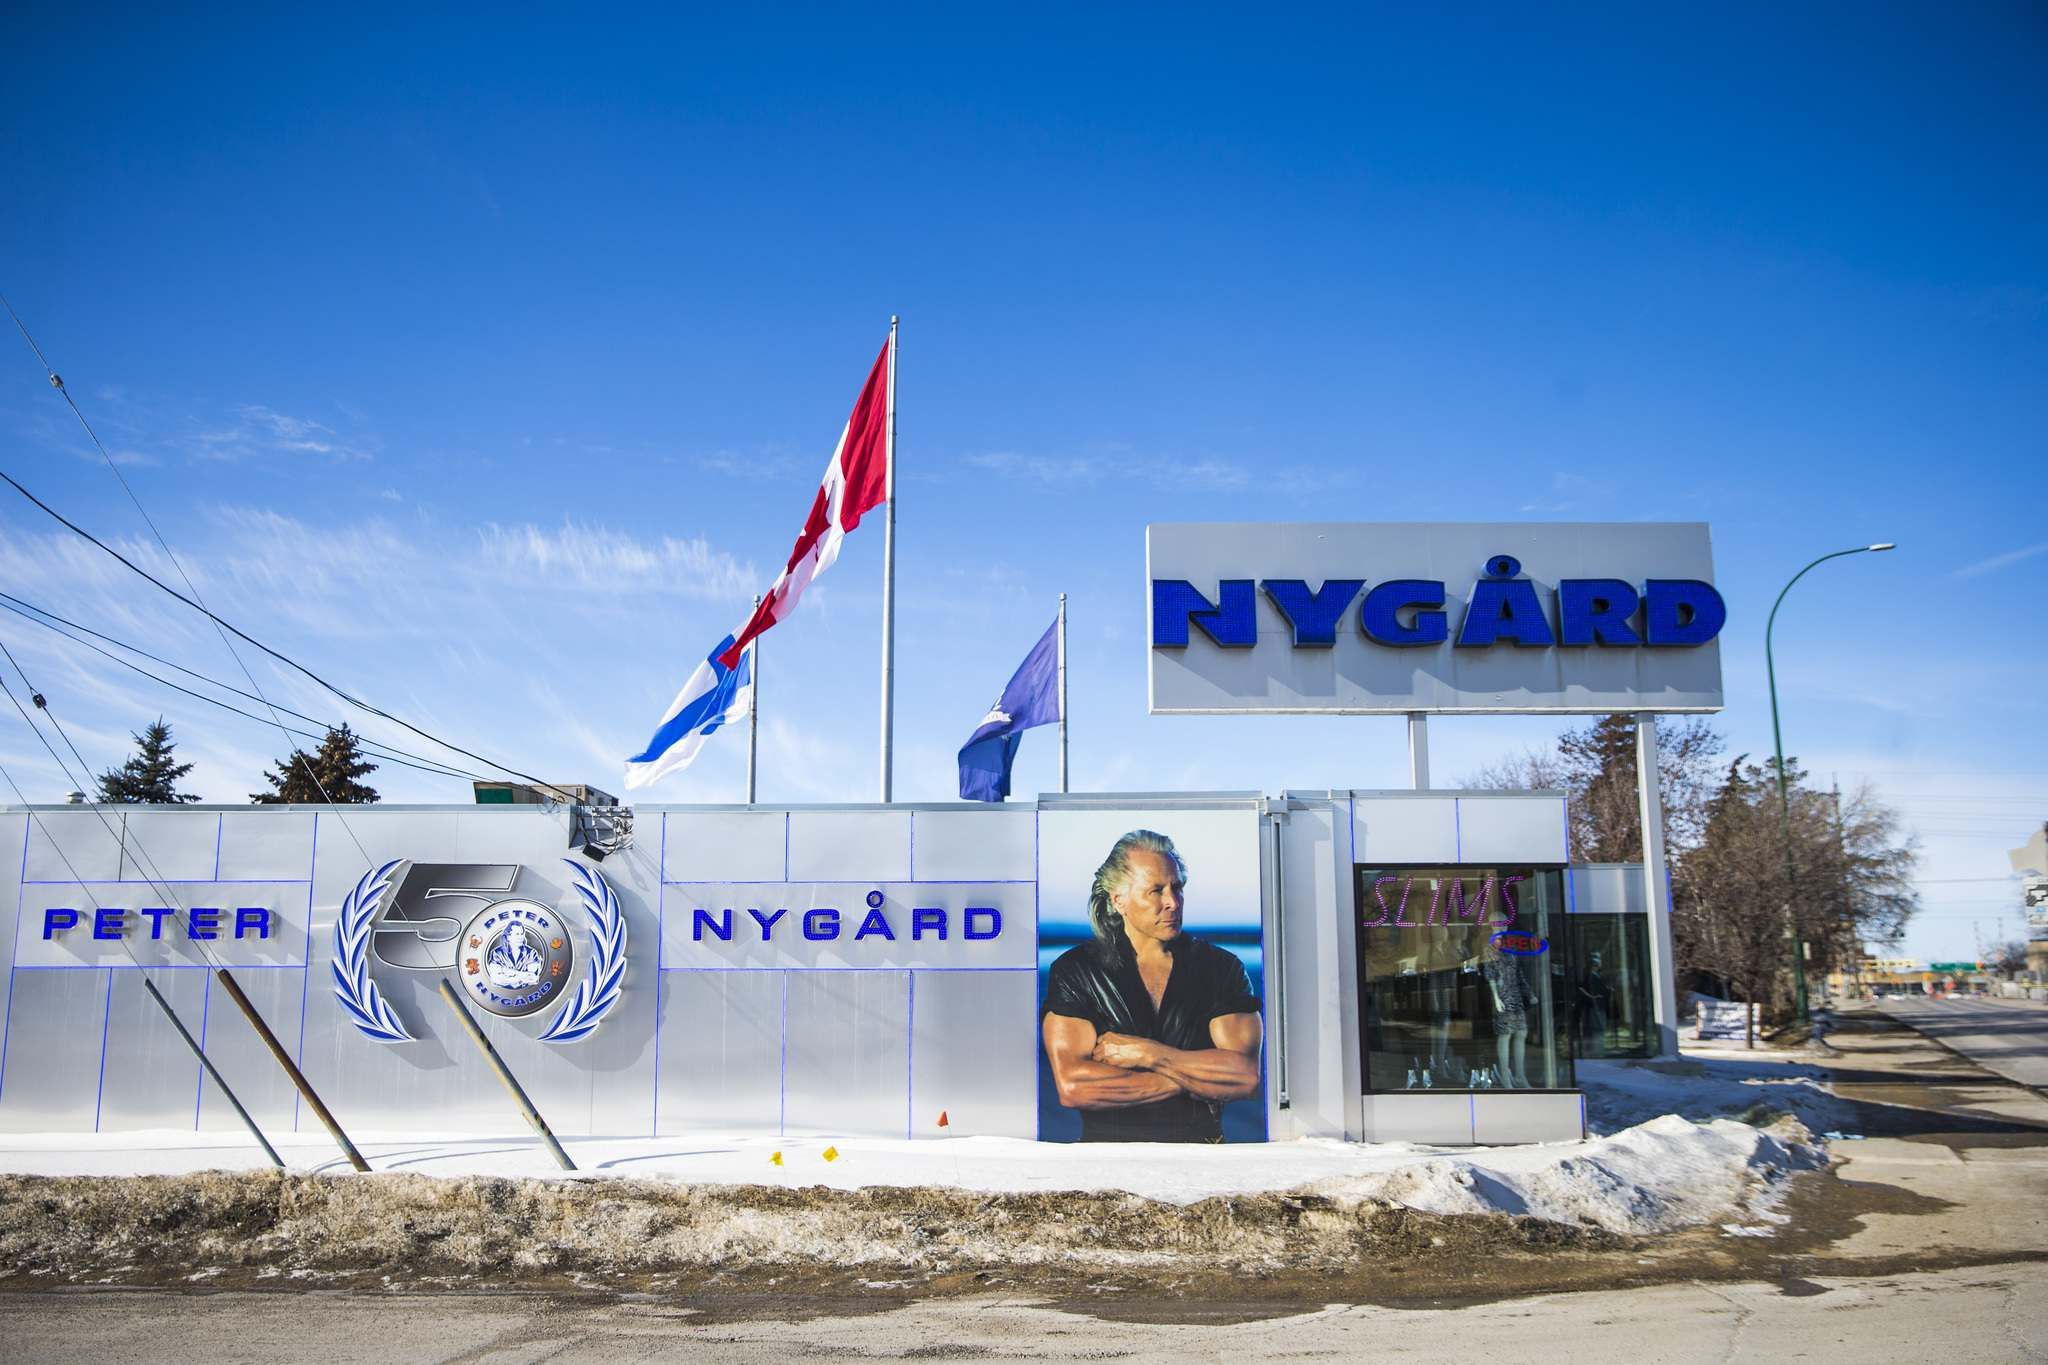 The number of women who have stepped forward to publicly accuse Peter Nygard of rape and sexual misconduct has risen to 57, according to the latest version of the U.S. class-action lawsuit filed against the Winnipeg fashion mogul. (Mikaela MacKenzie / Winnipeg Free Press files)